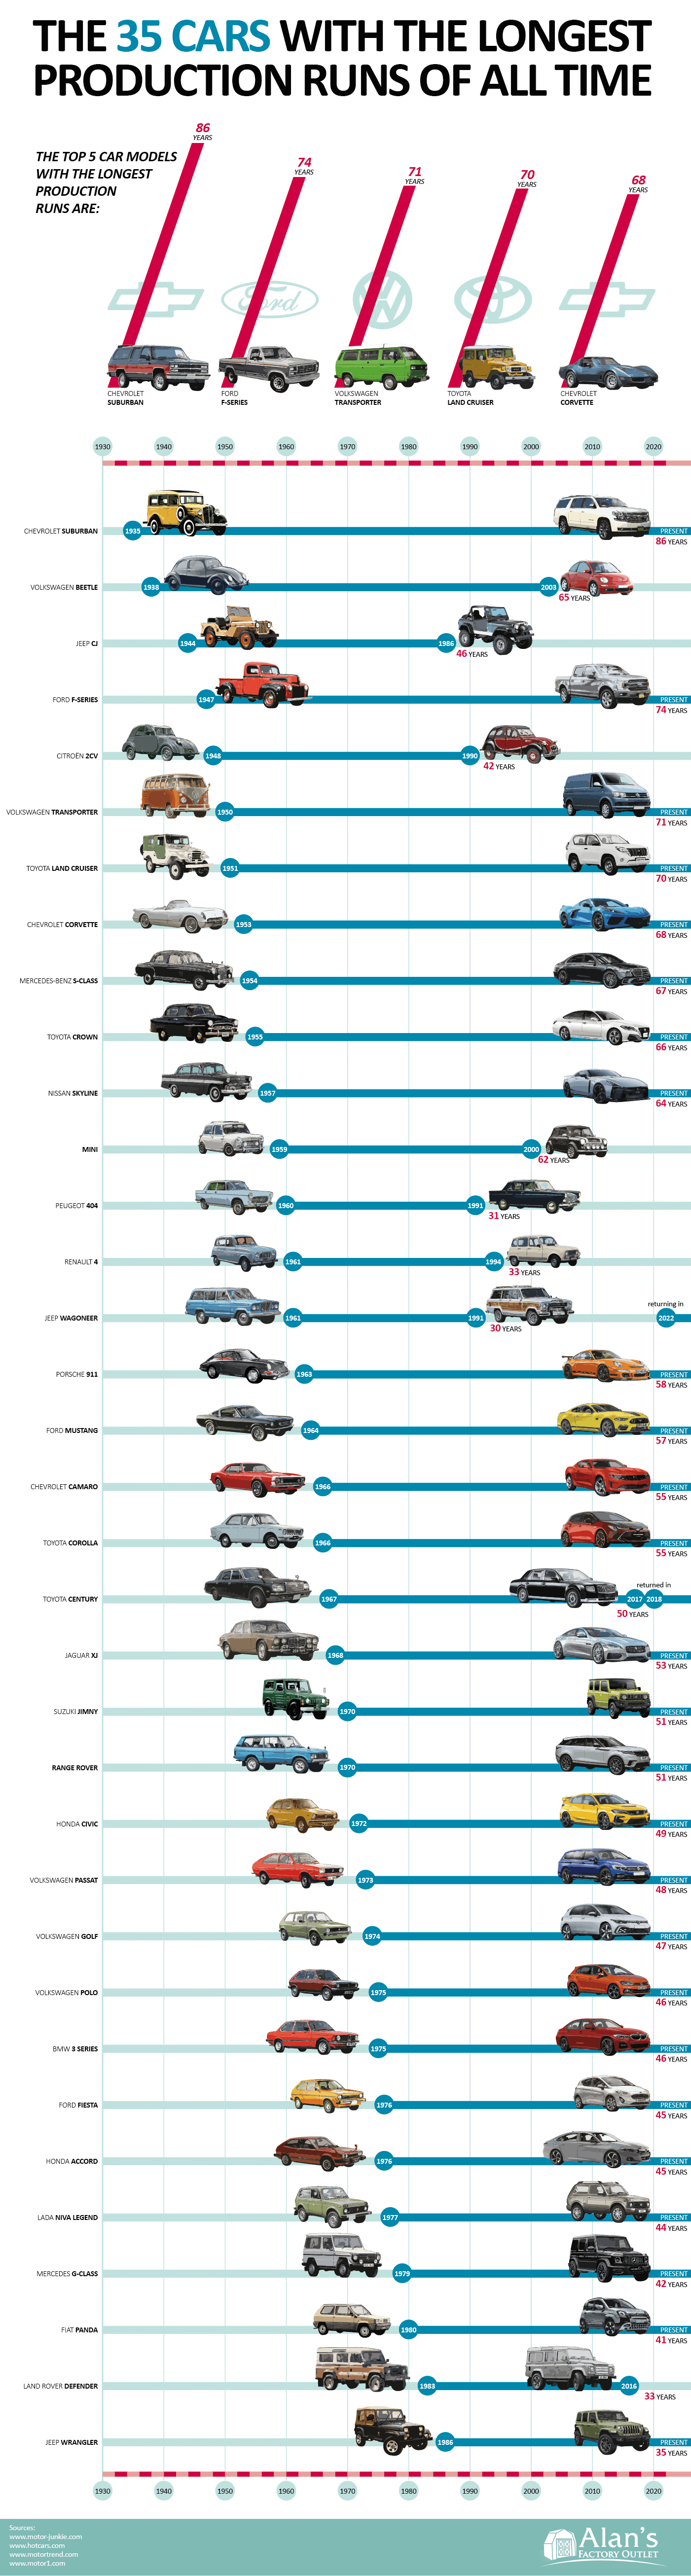 The Car Models With the Longest Production Runs of All Time